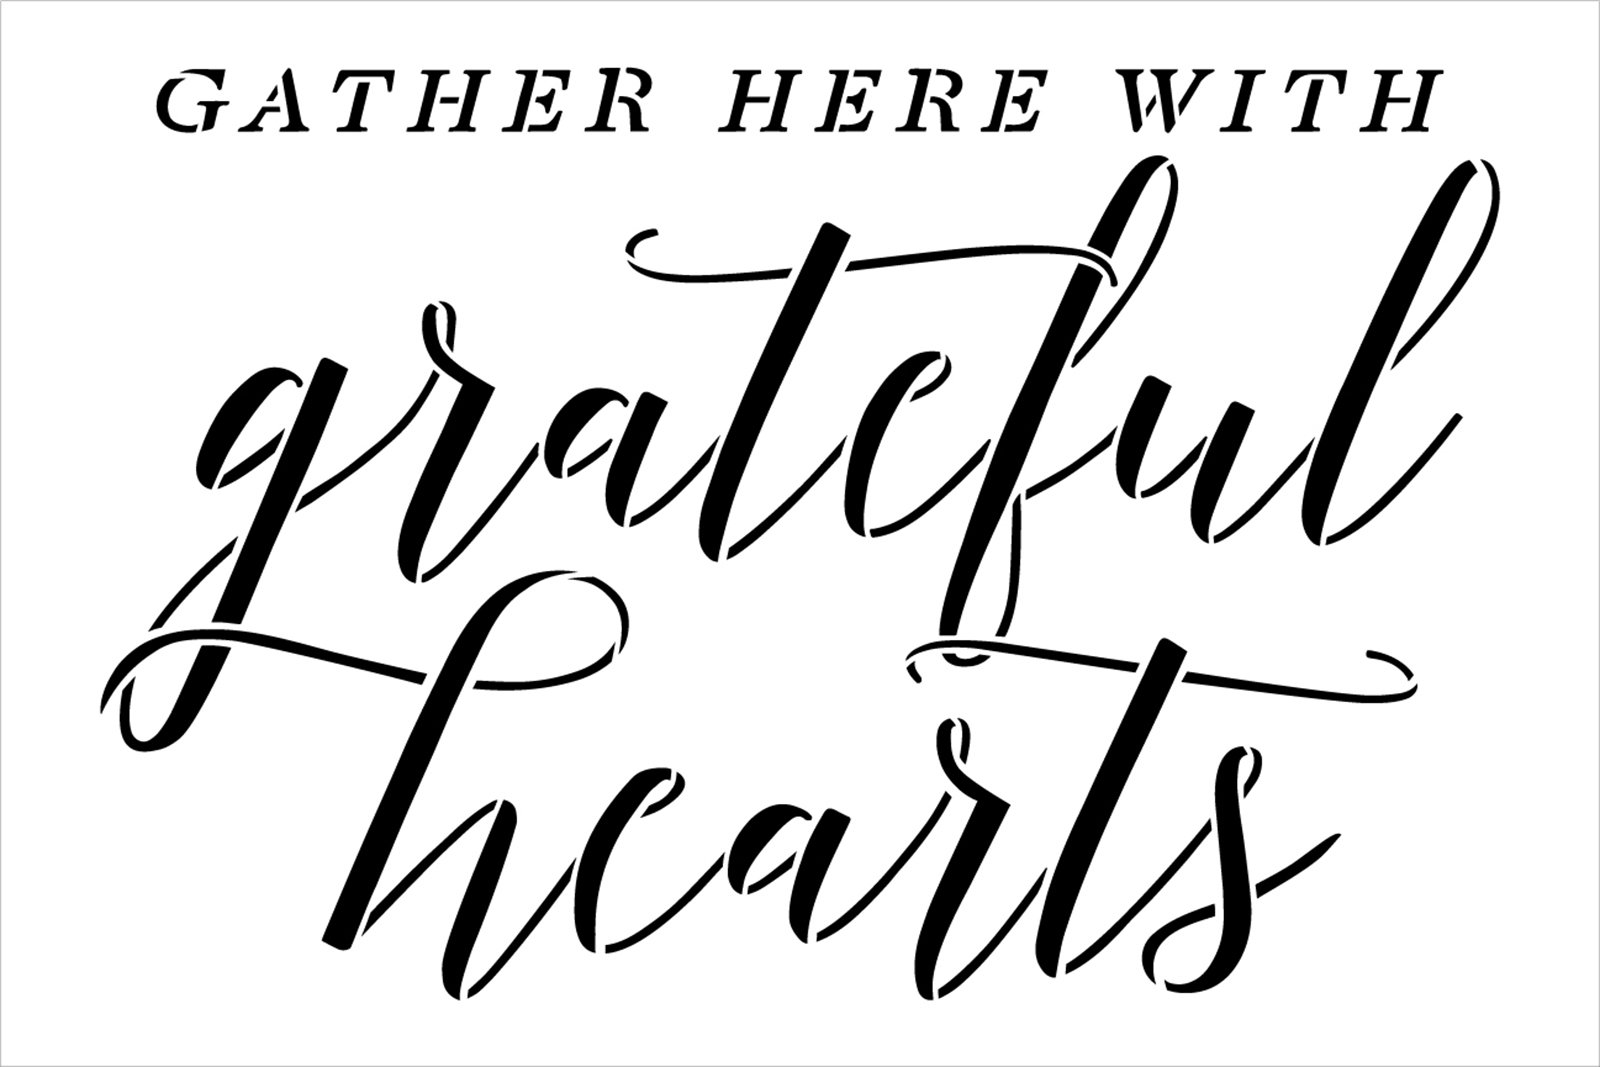 Gather Here Grateful Hearts Stencil by StudioR12   Craft DIY Autumn Thanksgiving Home Decor   Paint Wood Sign   Reusable Mylar Template   Select Size